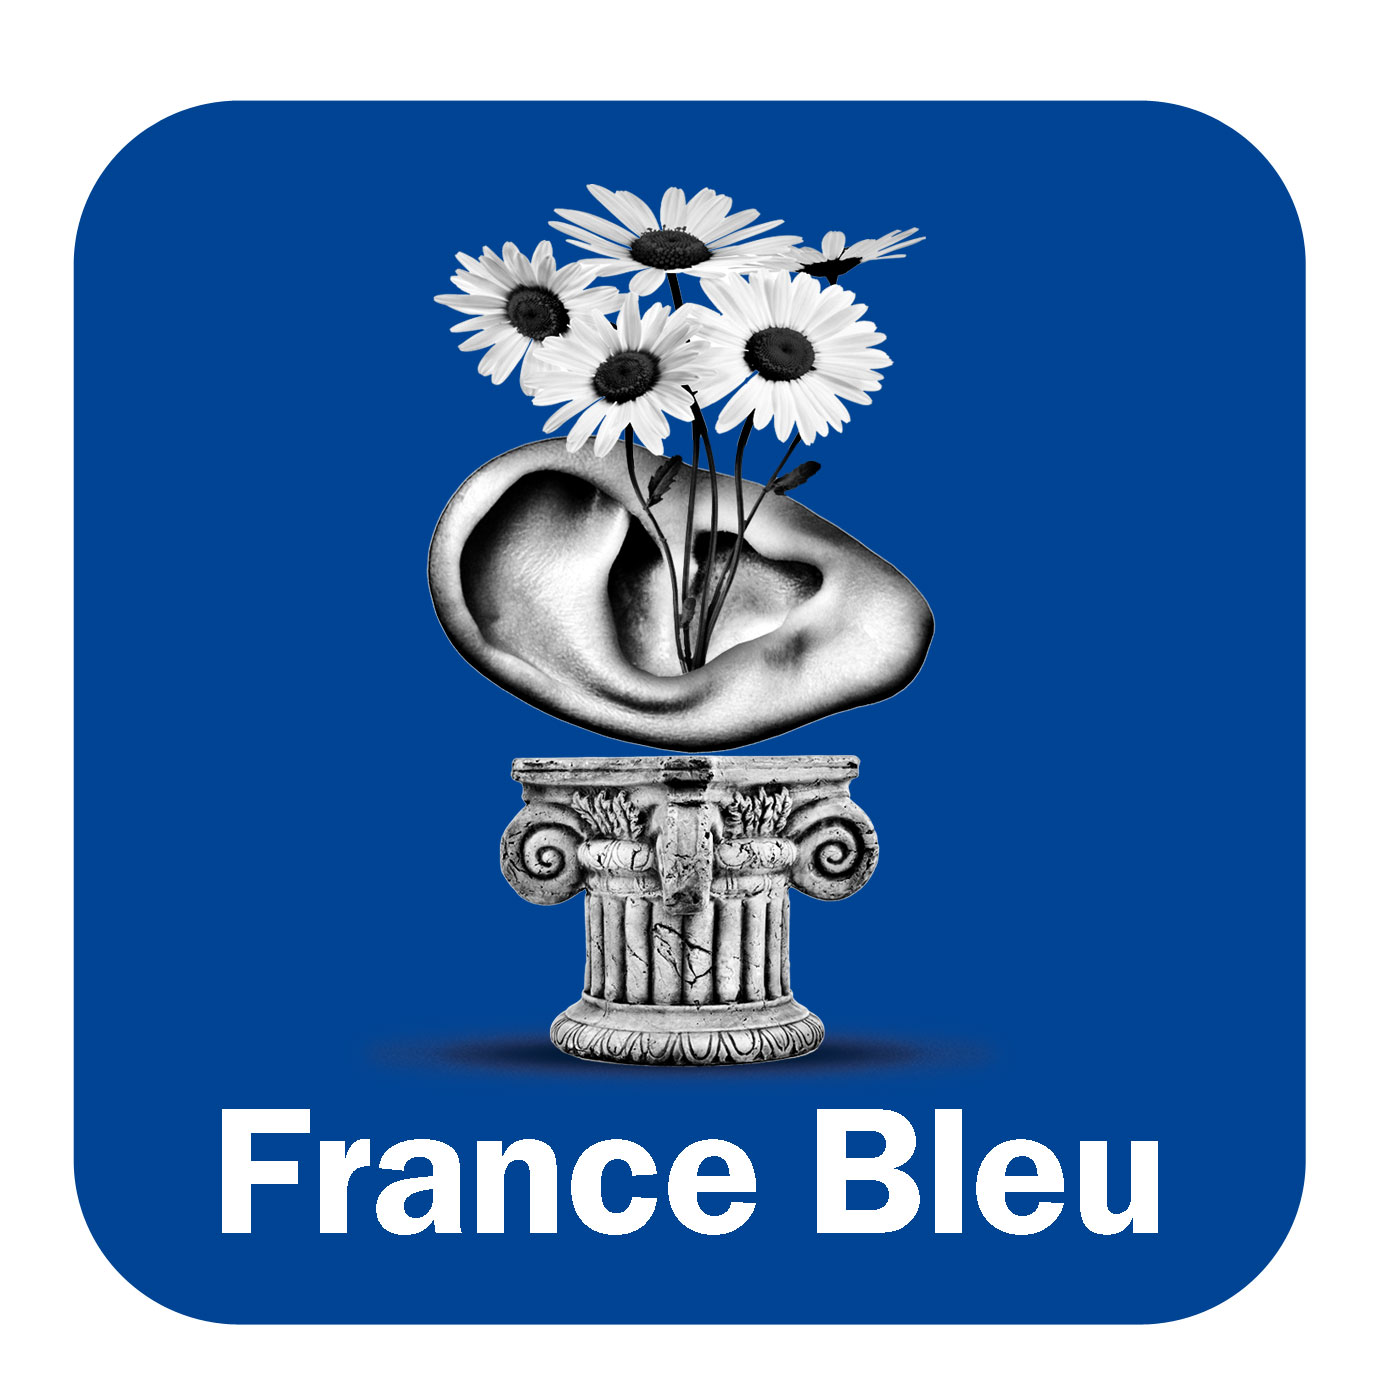 Les experts maison France Bleu Béarn